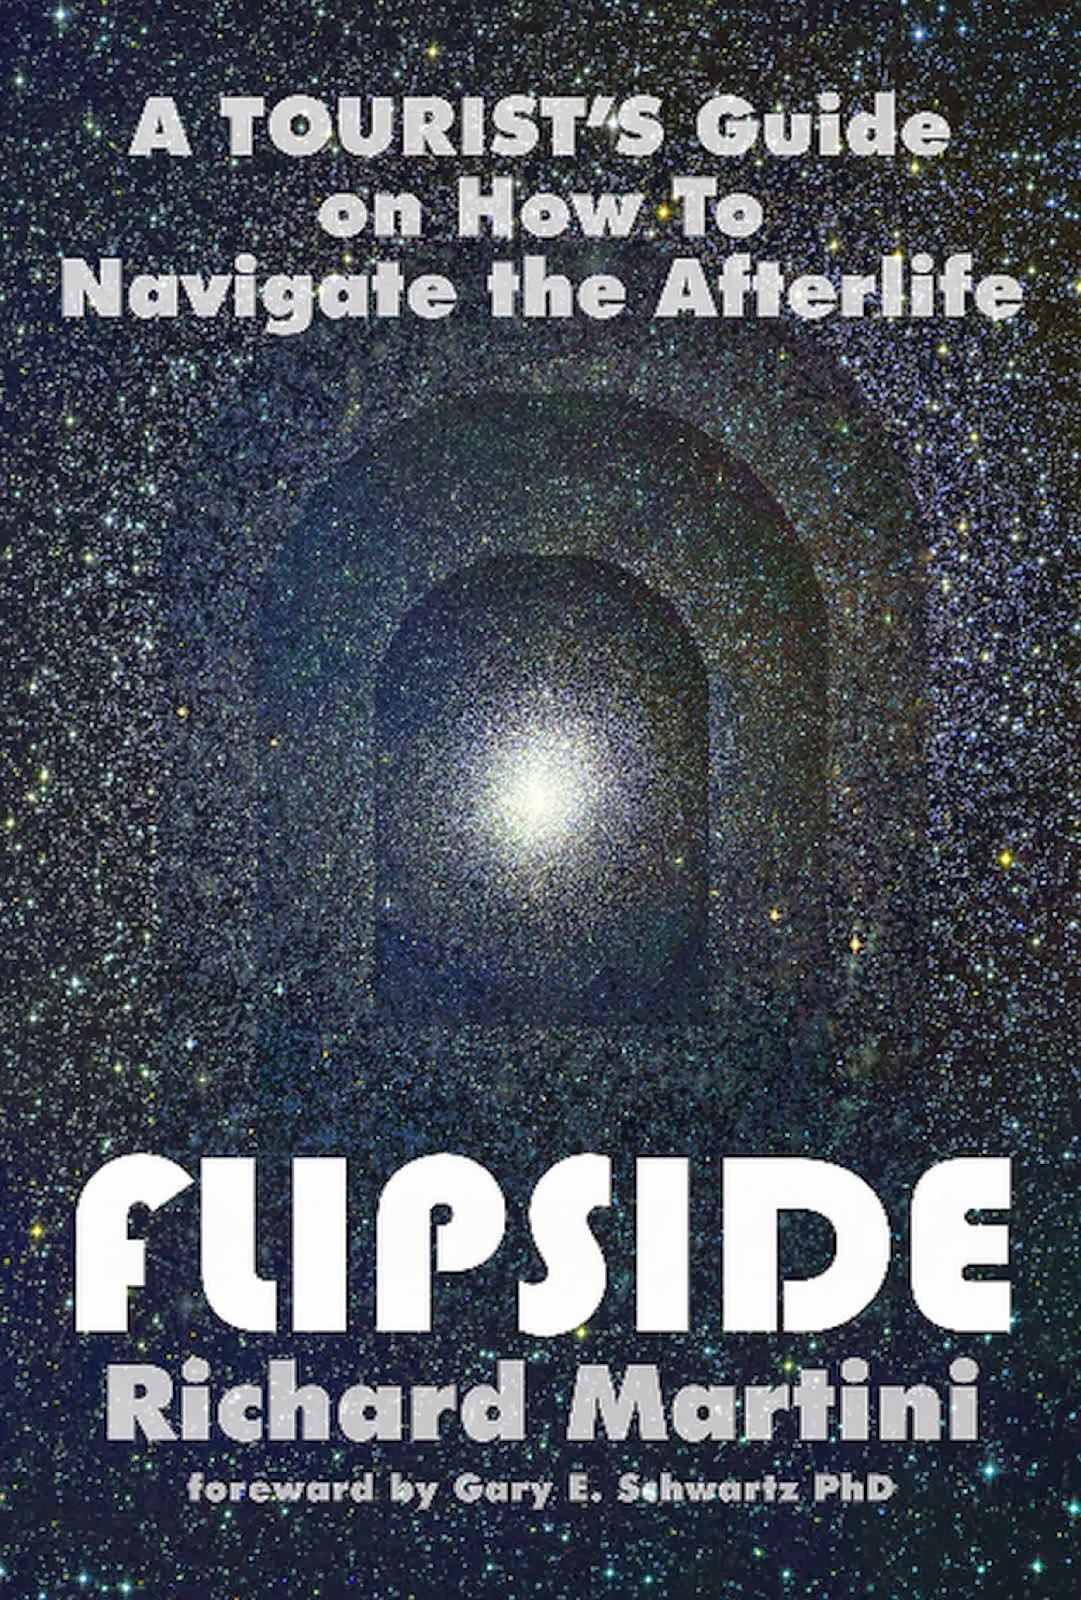 To Purchase a DVD of FLIPSIDE